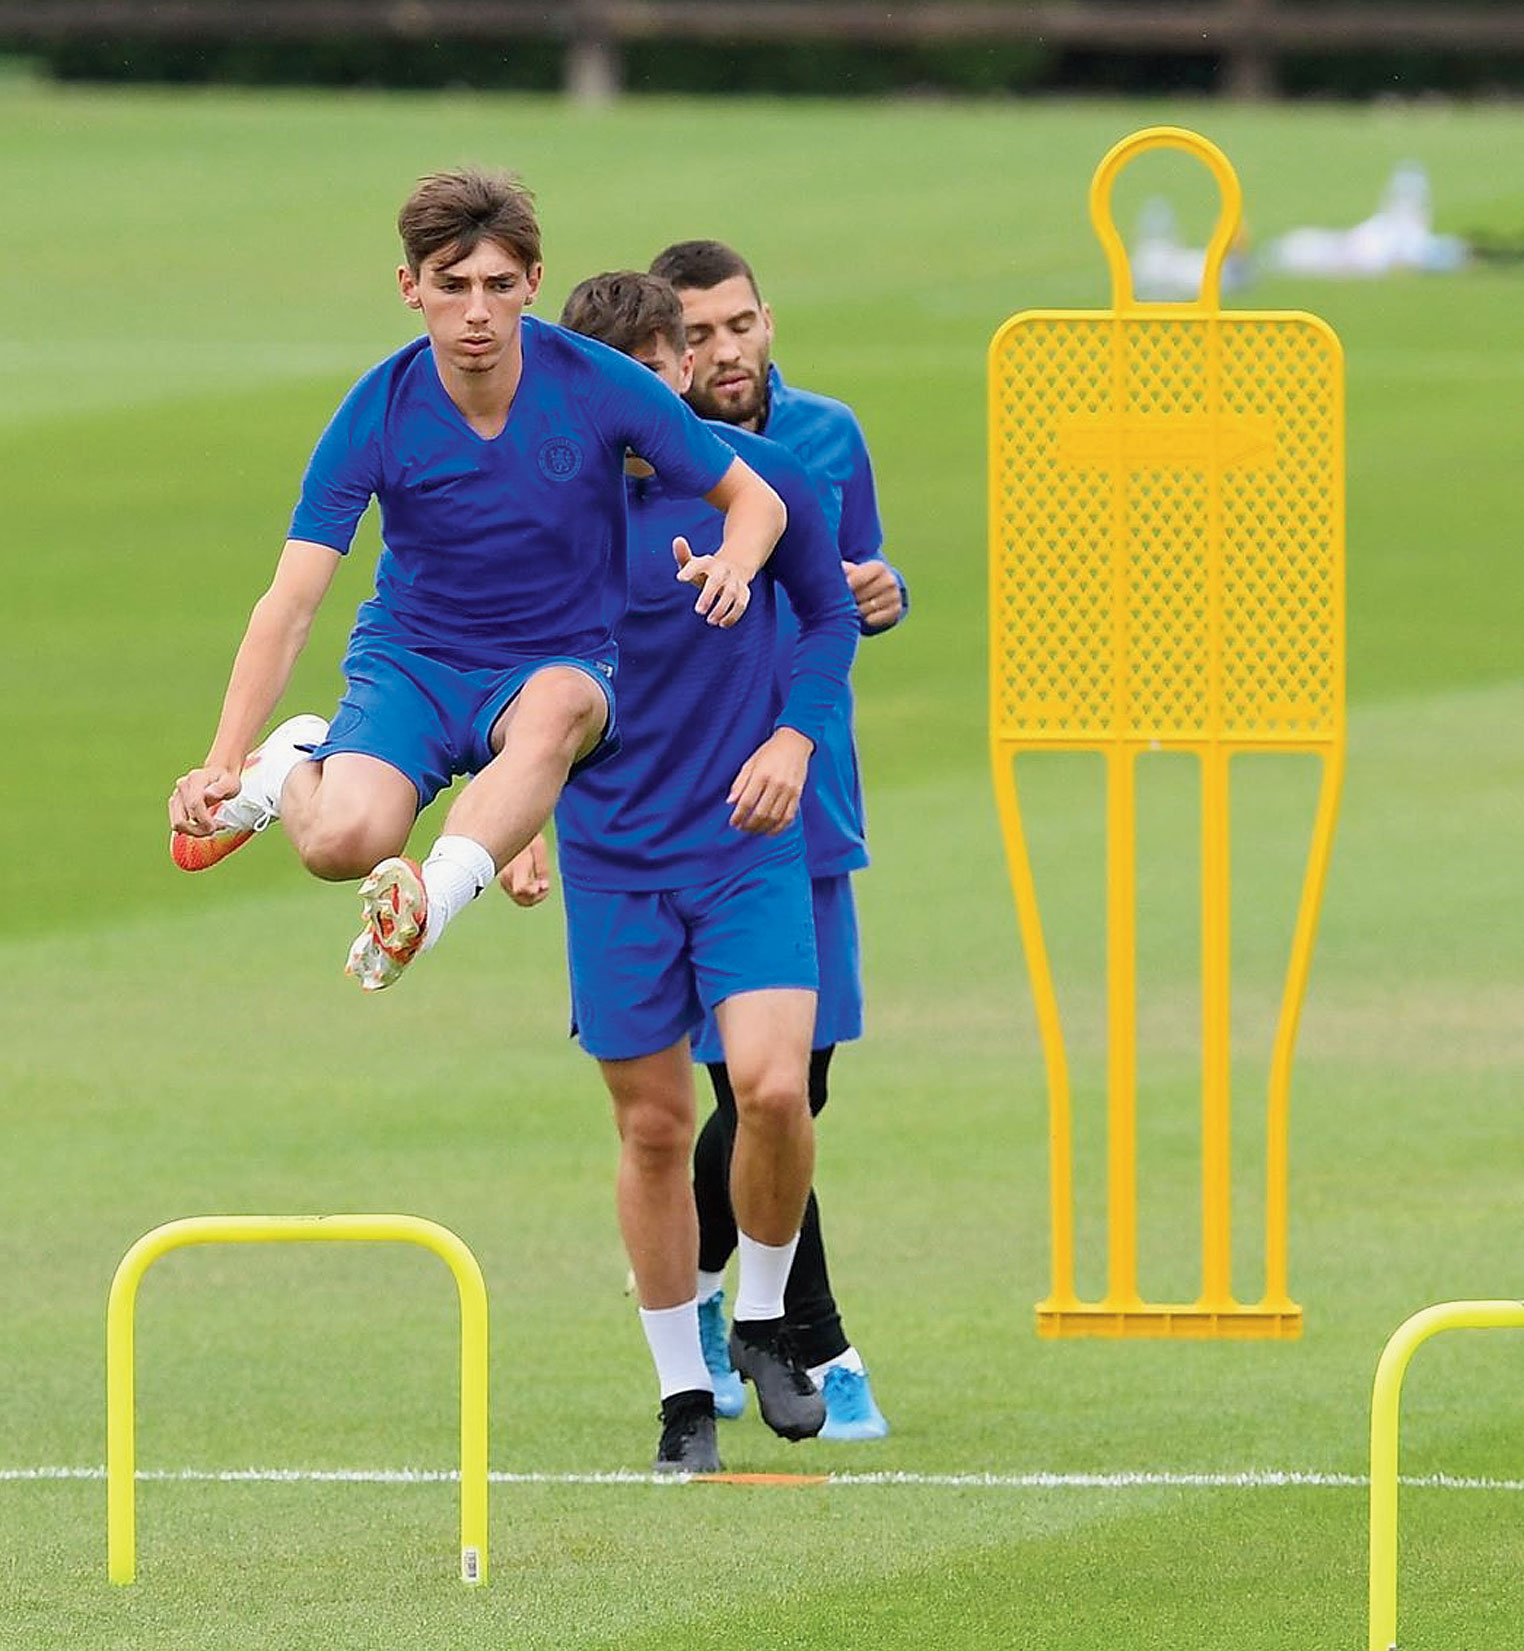 Chelsea players during a training session on Saturday.